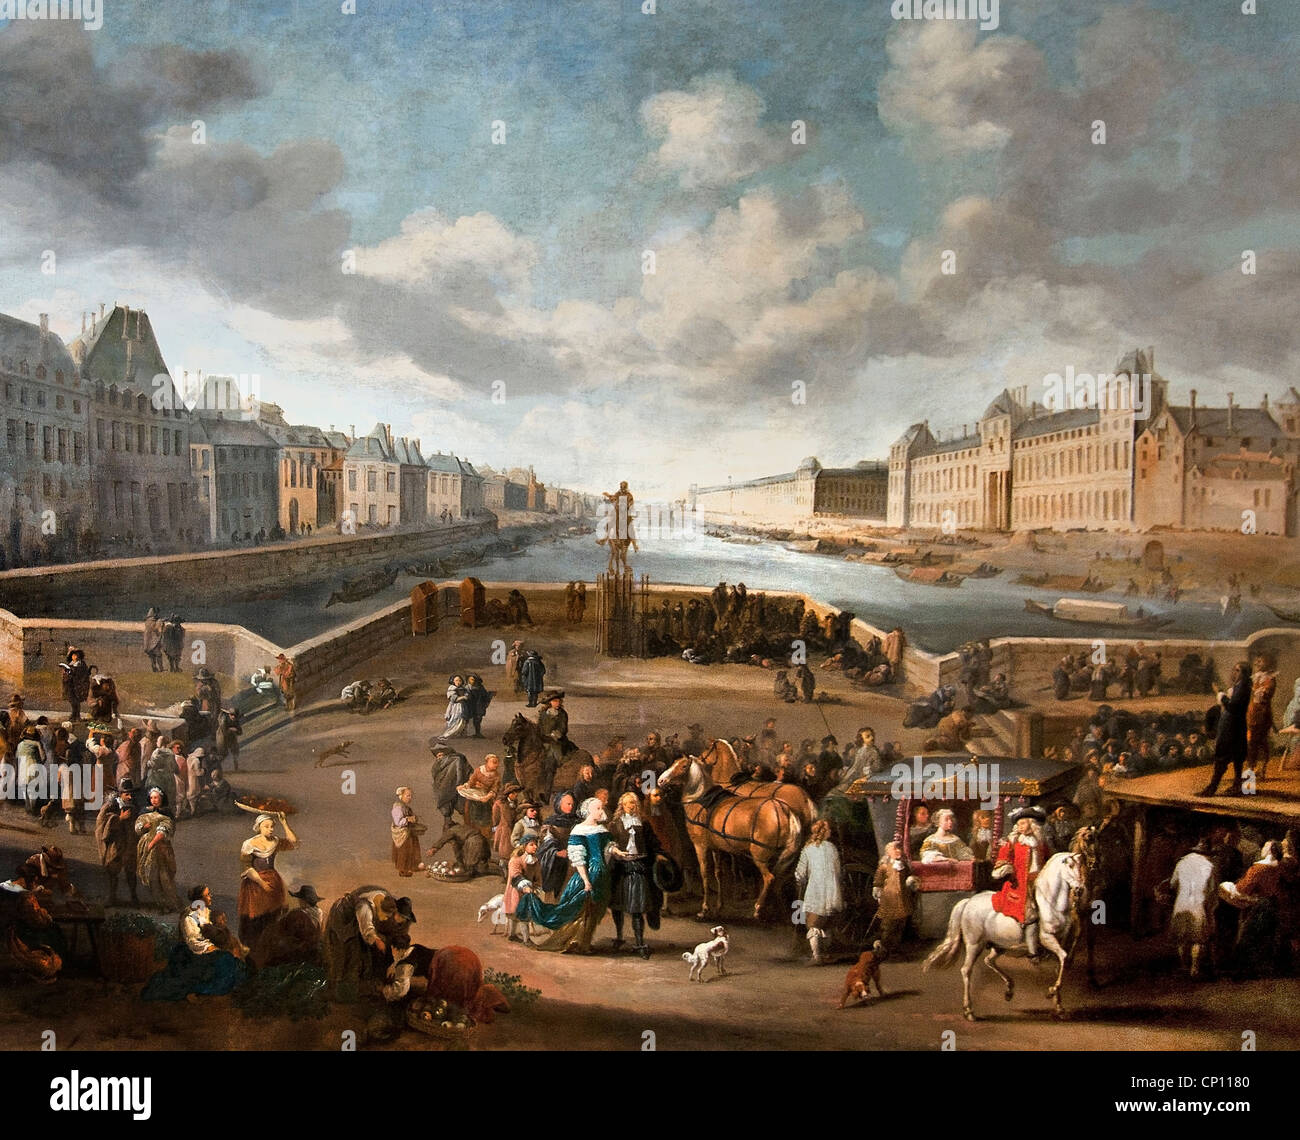 The Louvre seen from Pont Neuf - Le Louvre vu du Pont Neuf 1666 by Hendrick MOMMERS 1623-1693 Dutch Netherlands - Stock Image